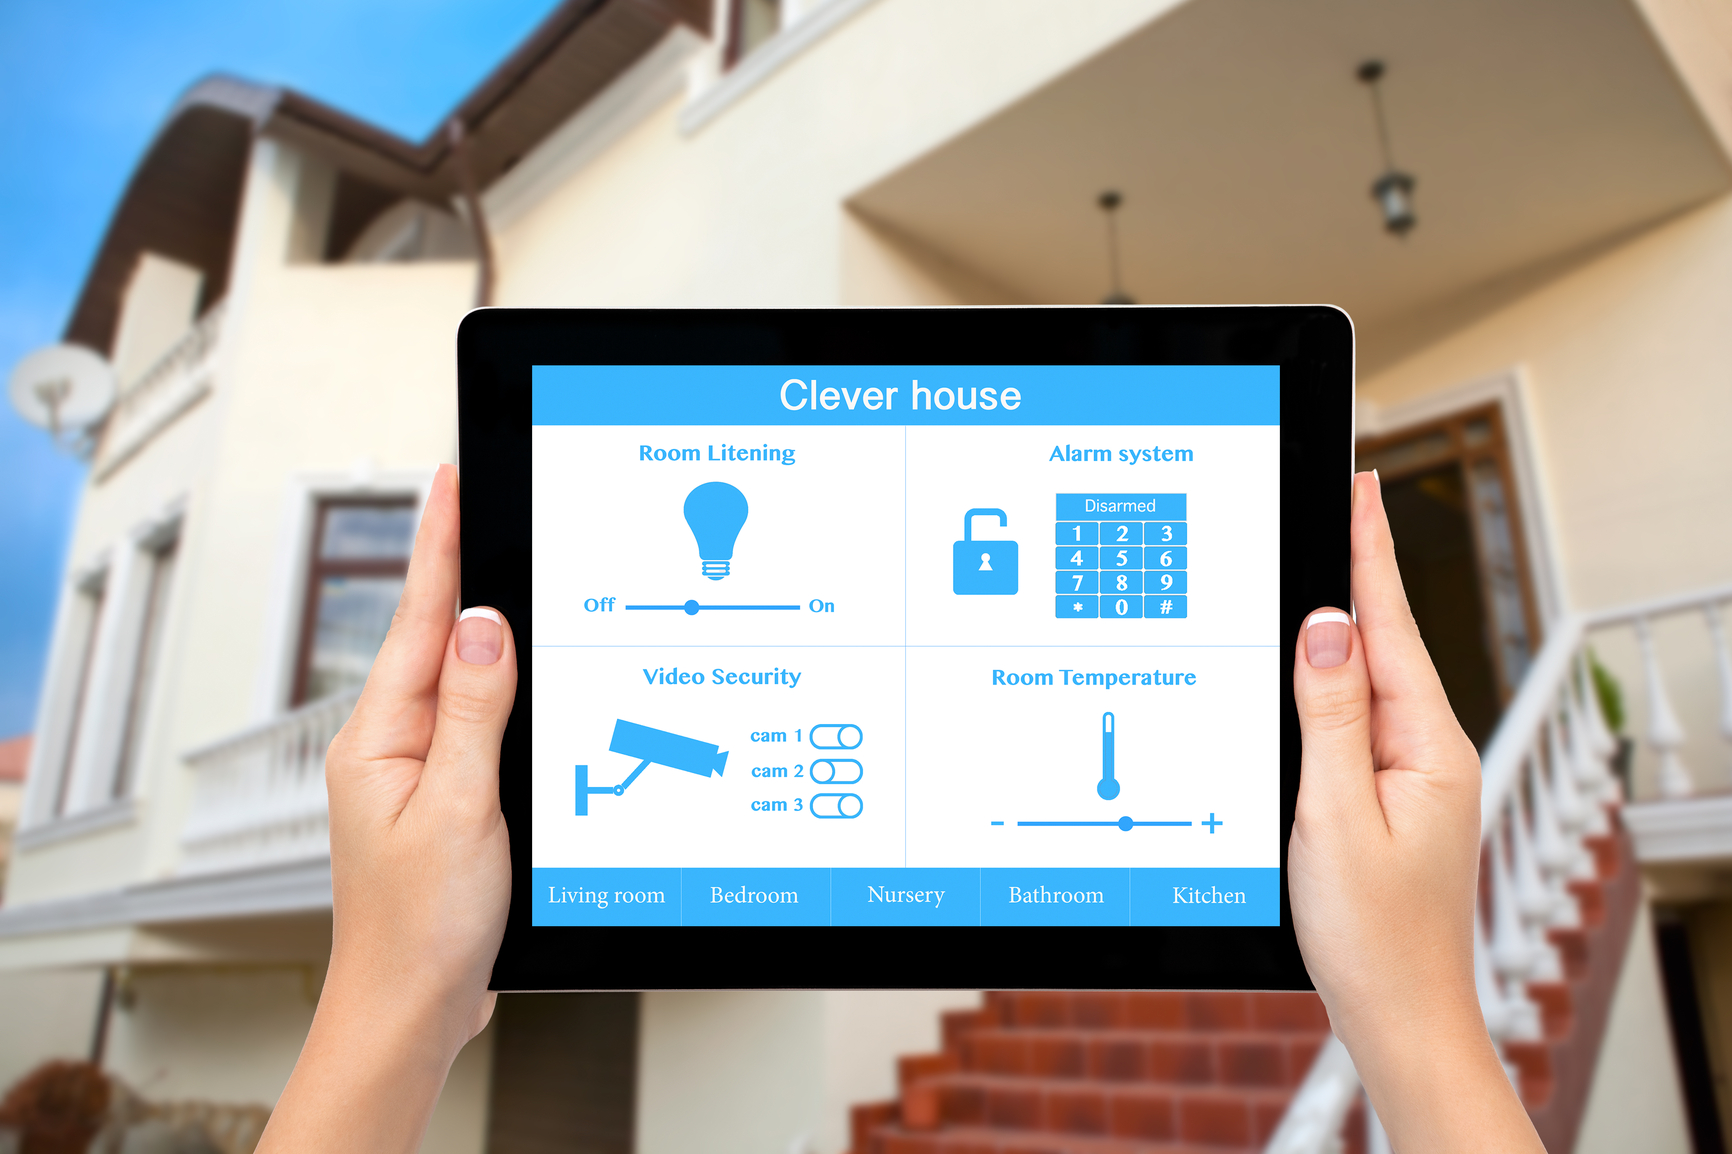 Tips 5 Products To Make Your Home Smart